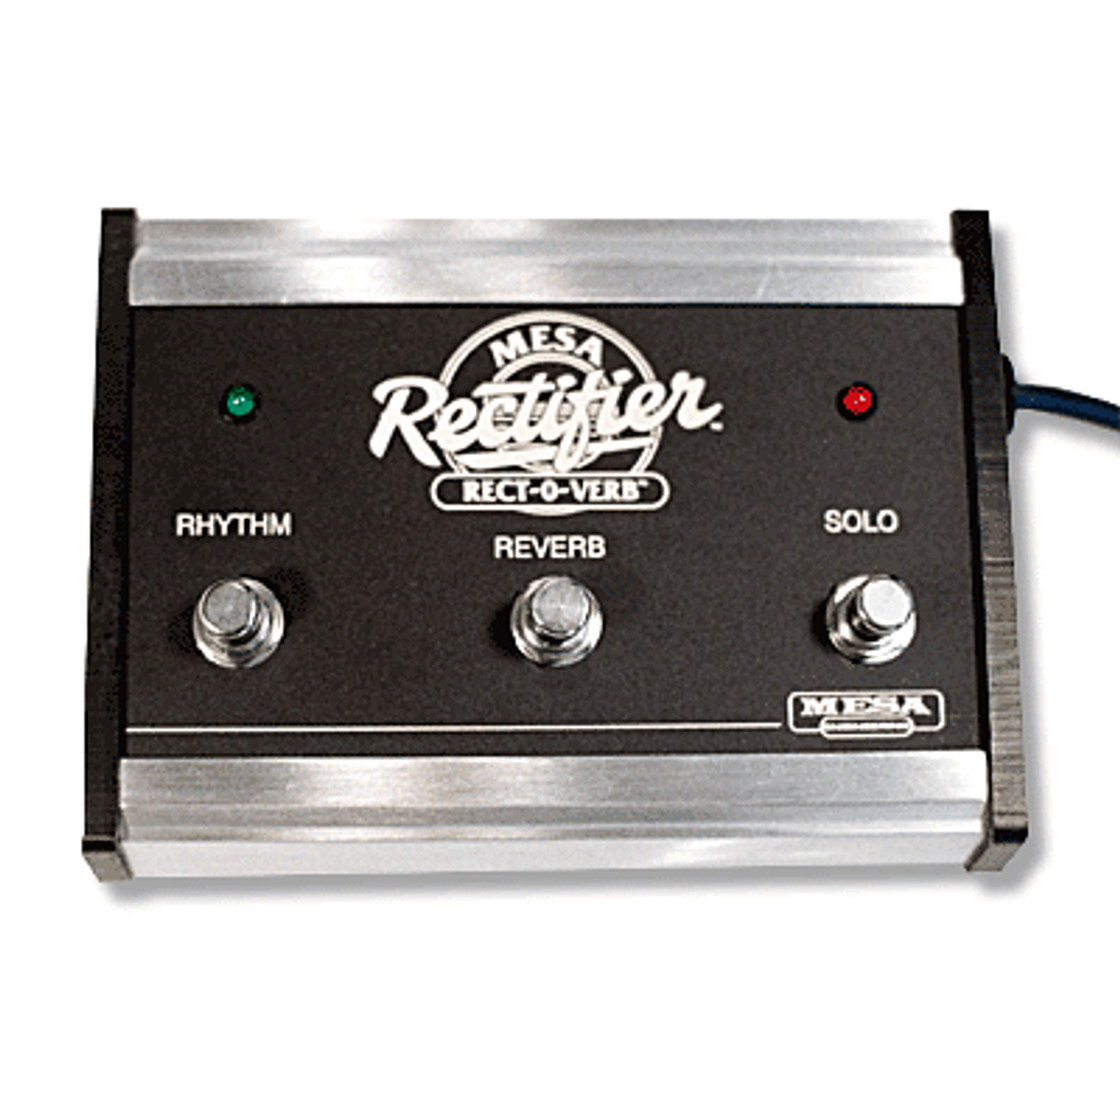 shop footswitches rectifier series footswitches rect o verb 50 footswitches mesa boogie. Black Bedroom Furniture Sets. Home Design Ideas